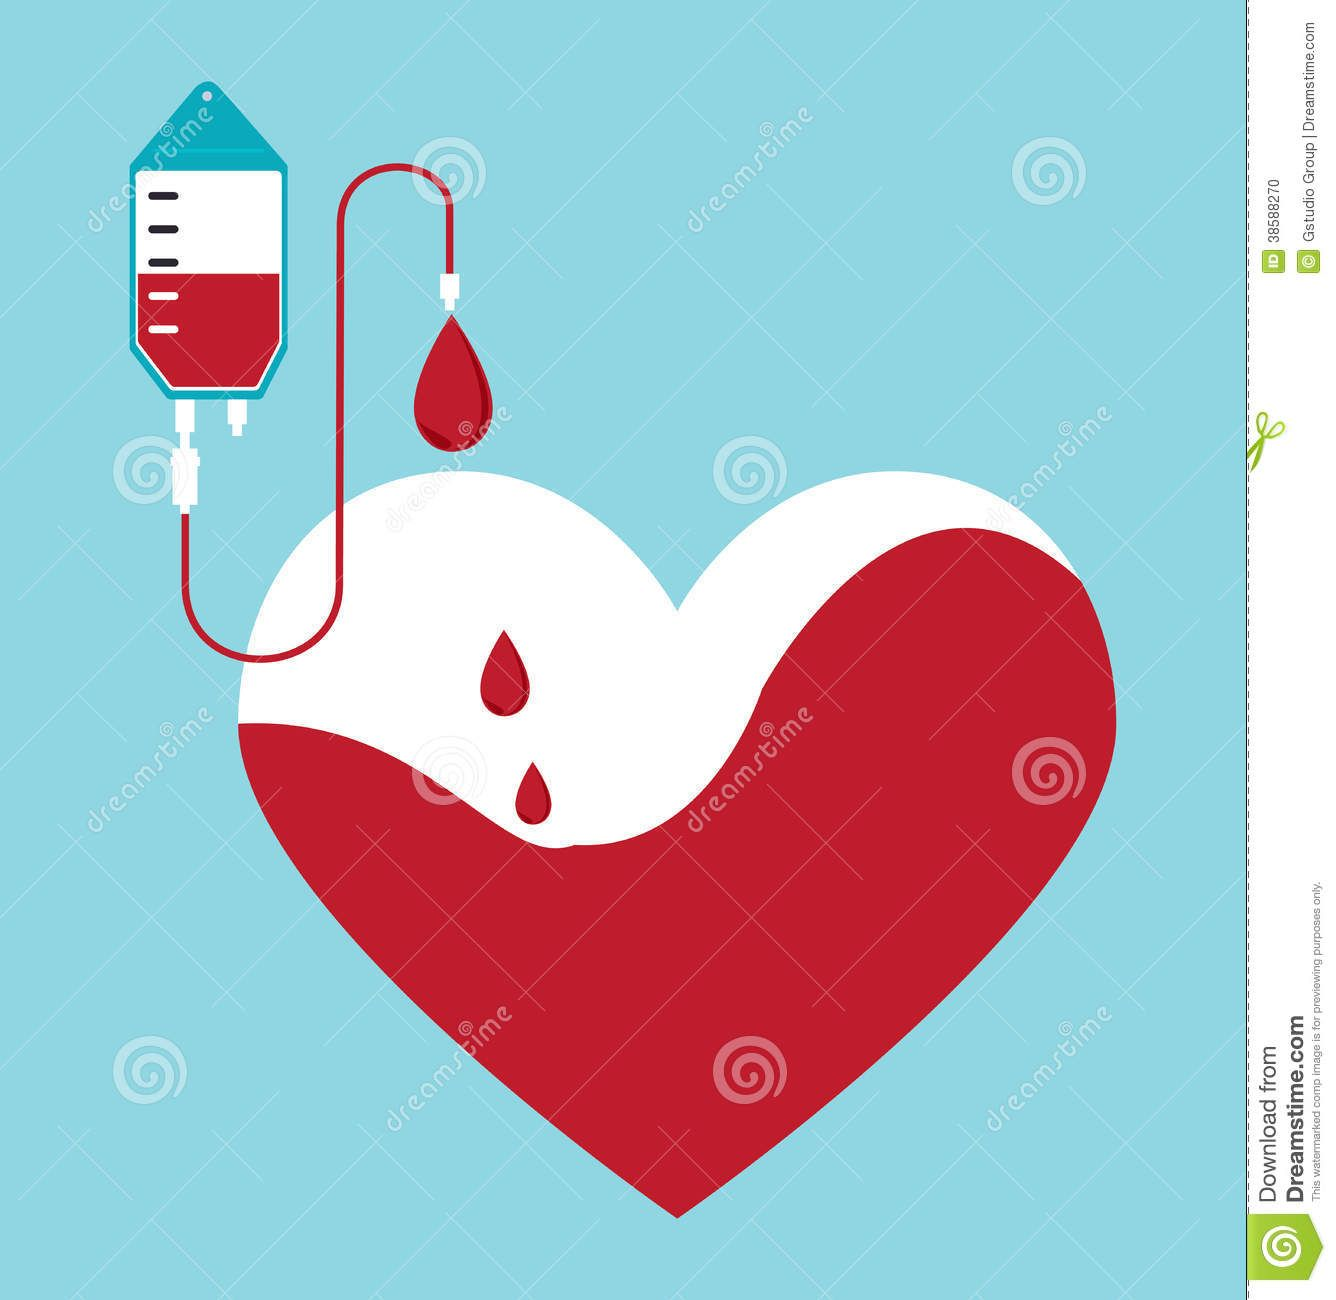 Poster design on blood donation - Poster Design Health Donating Blood Posters Google Search Download